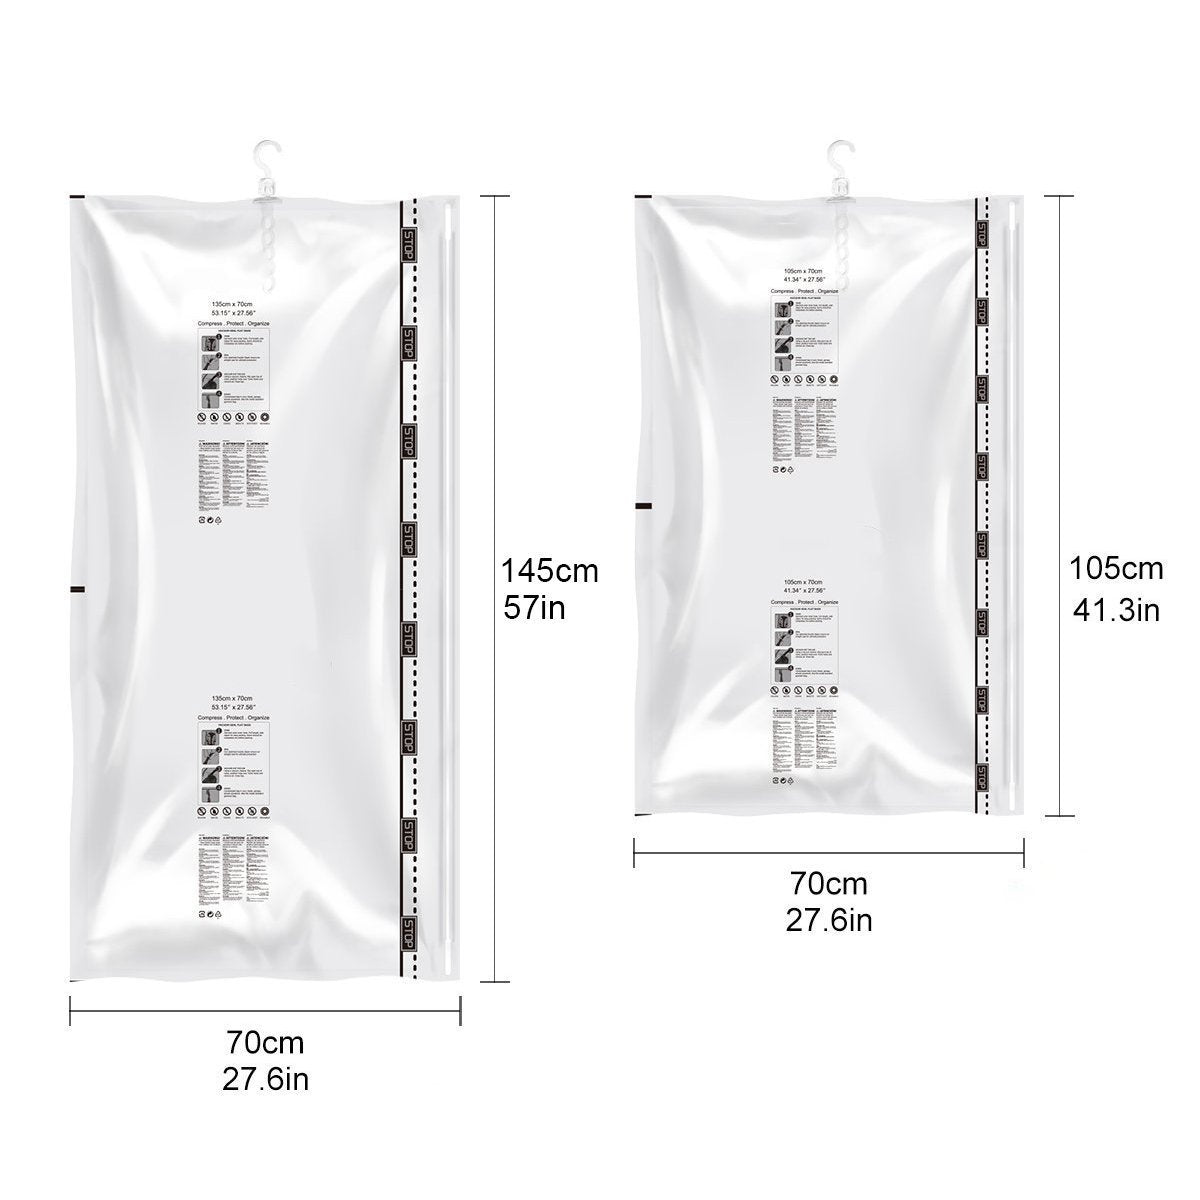 Order now stephenie hanging vacuum space saver bags 4 pack 4 l 57 x 27 1 2 for coats long clothes closet organizer storage bags